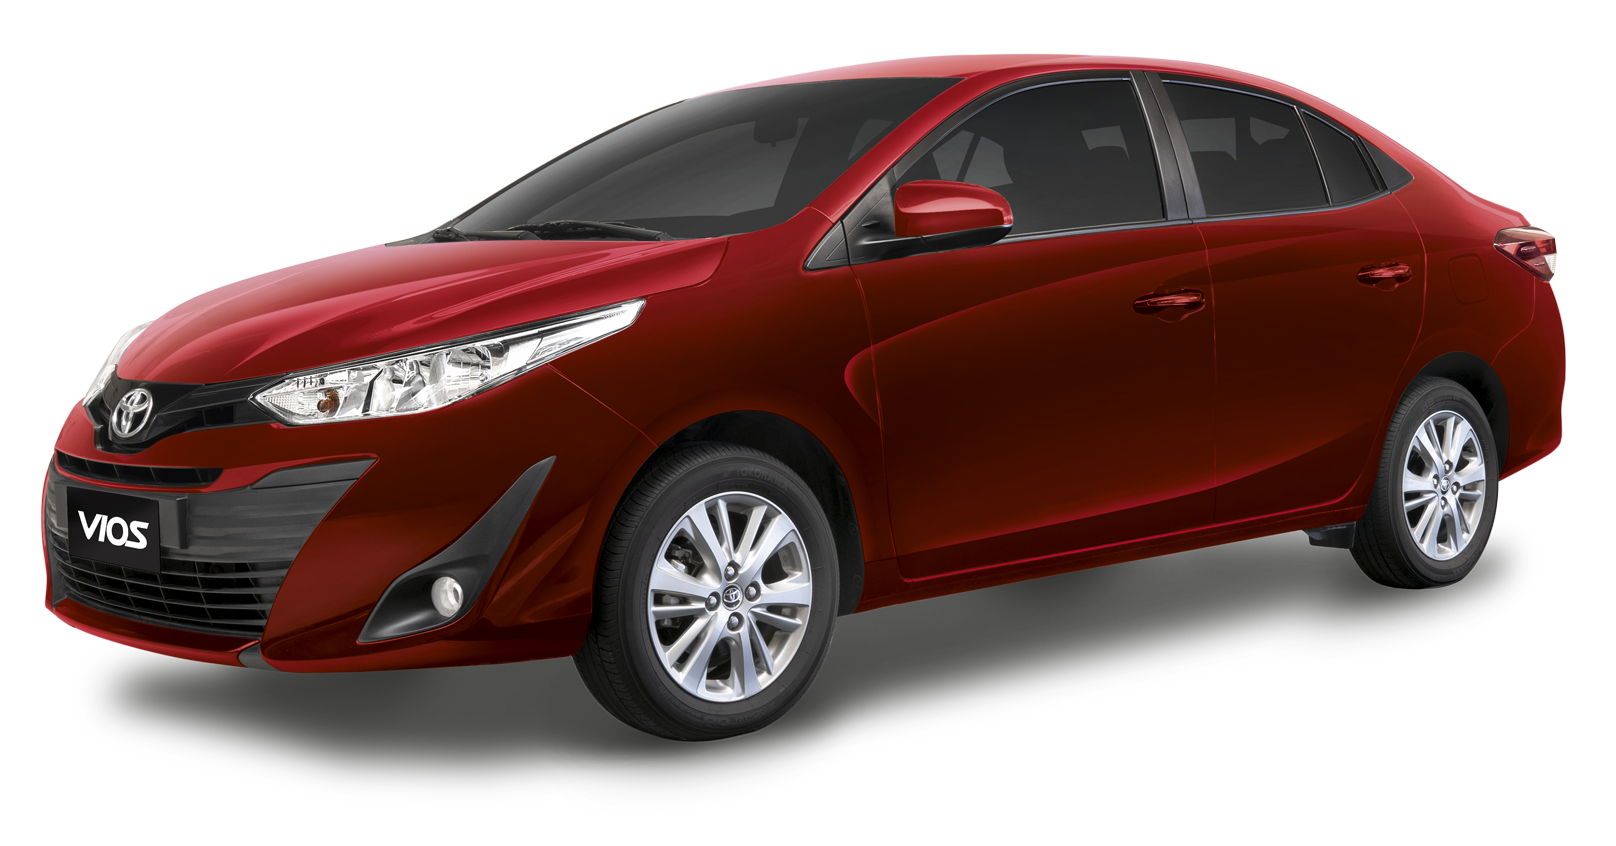 Toyota strengthens Vios with latest variant